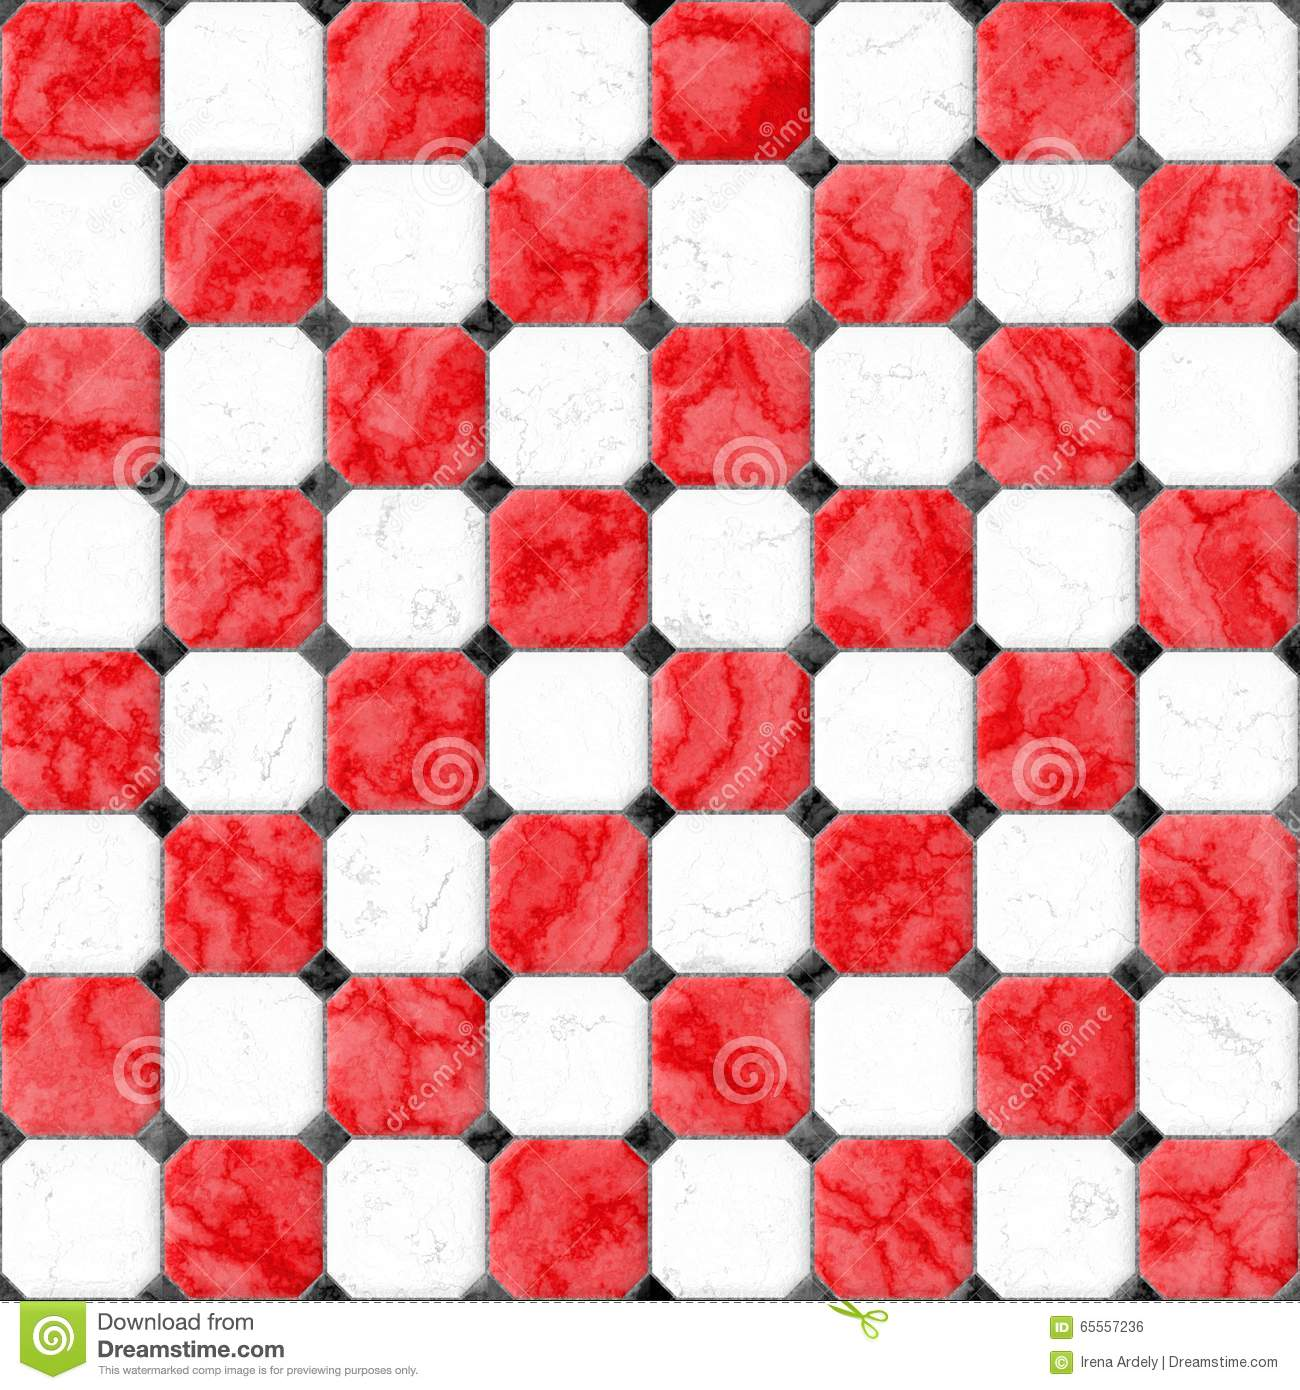 Red White Marble Square Floor Tiles With Black Rhombs And Gray Gap